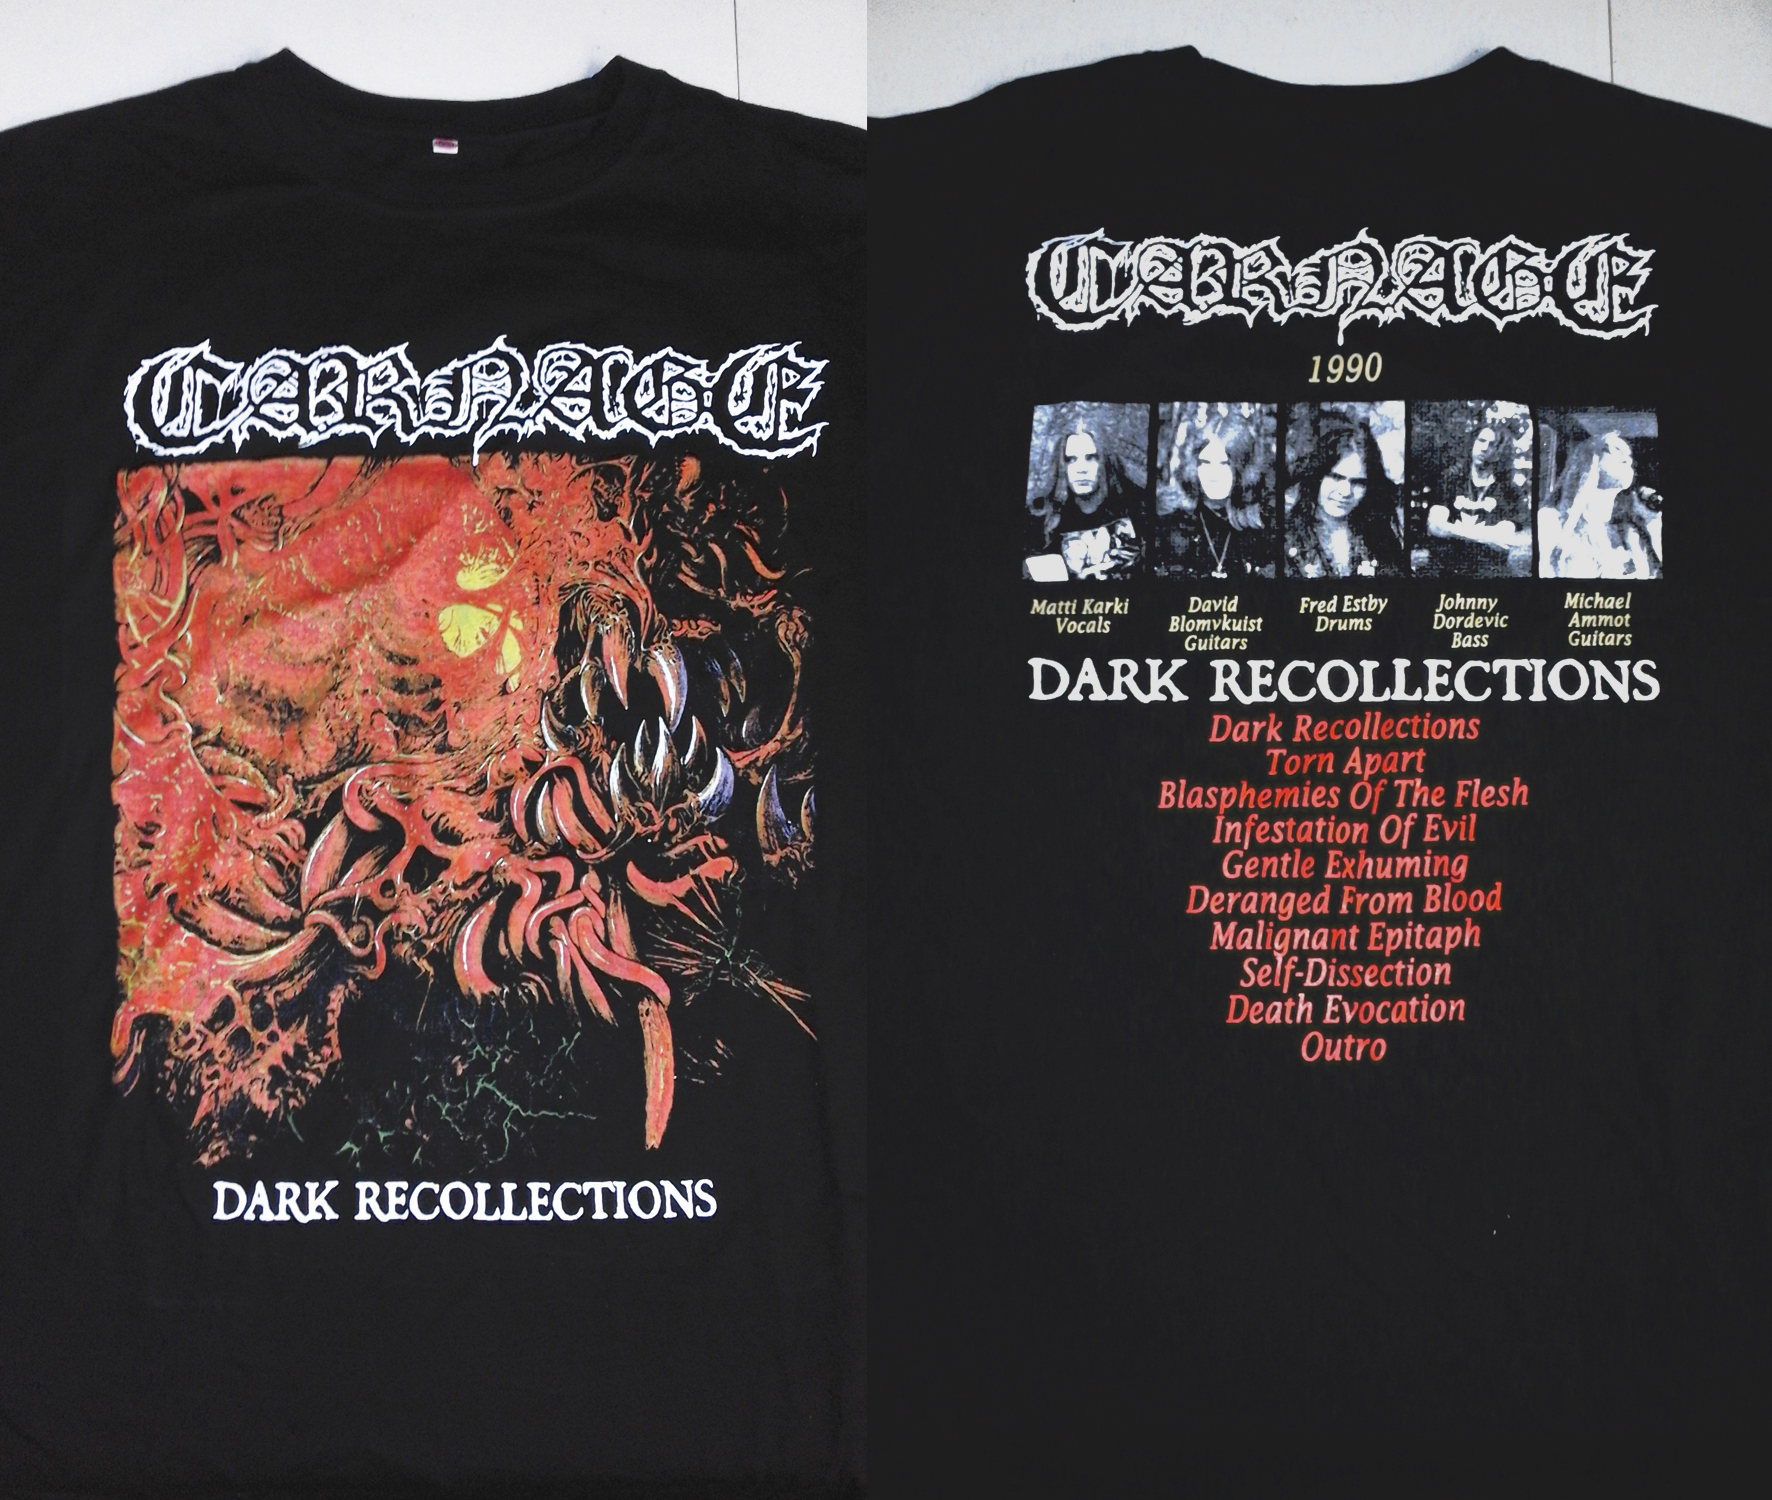 Carnage - Dark Recollections